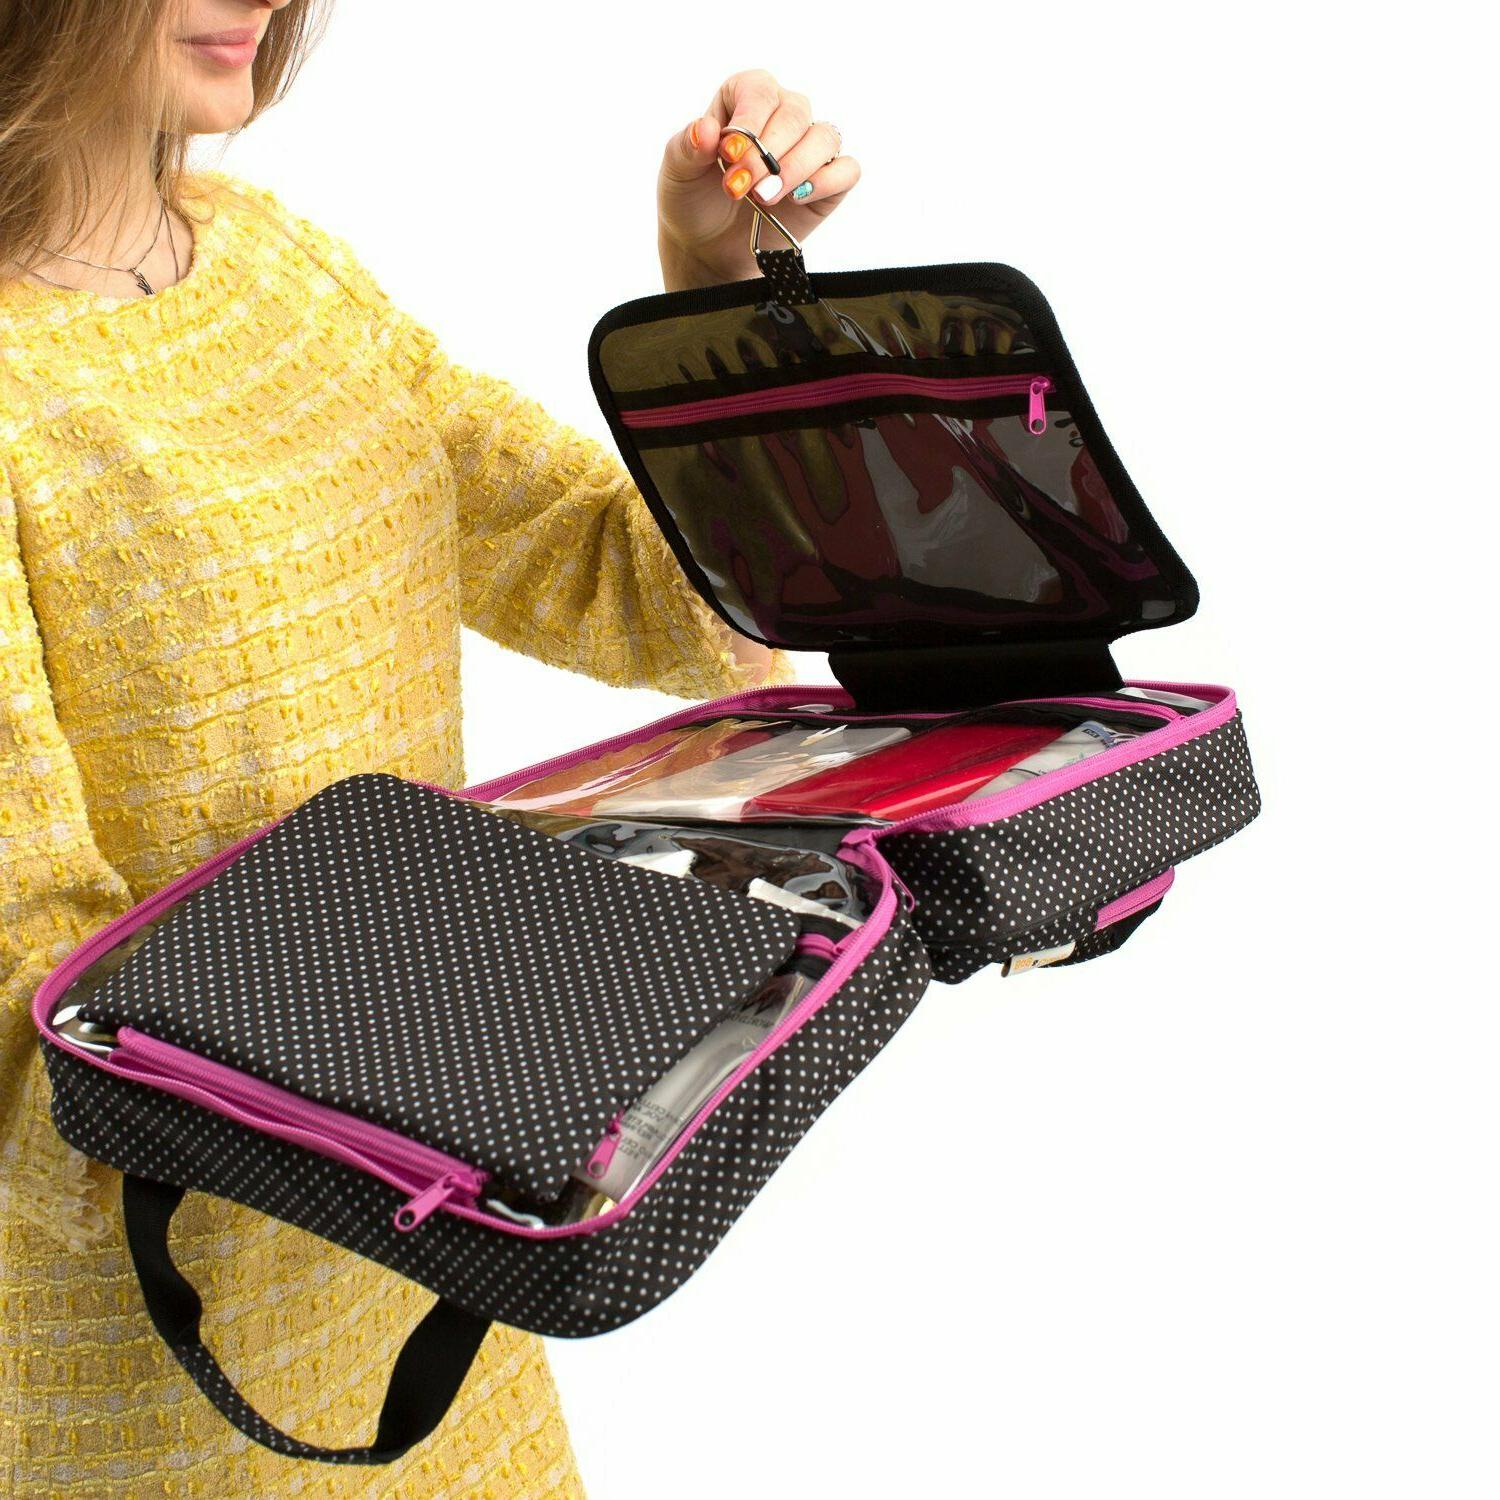 Large Cosmetic Bag For Women - Travel Toiletry Bag